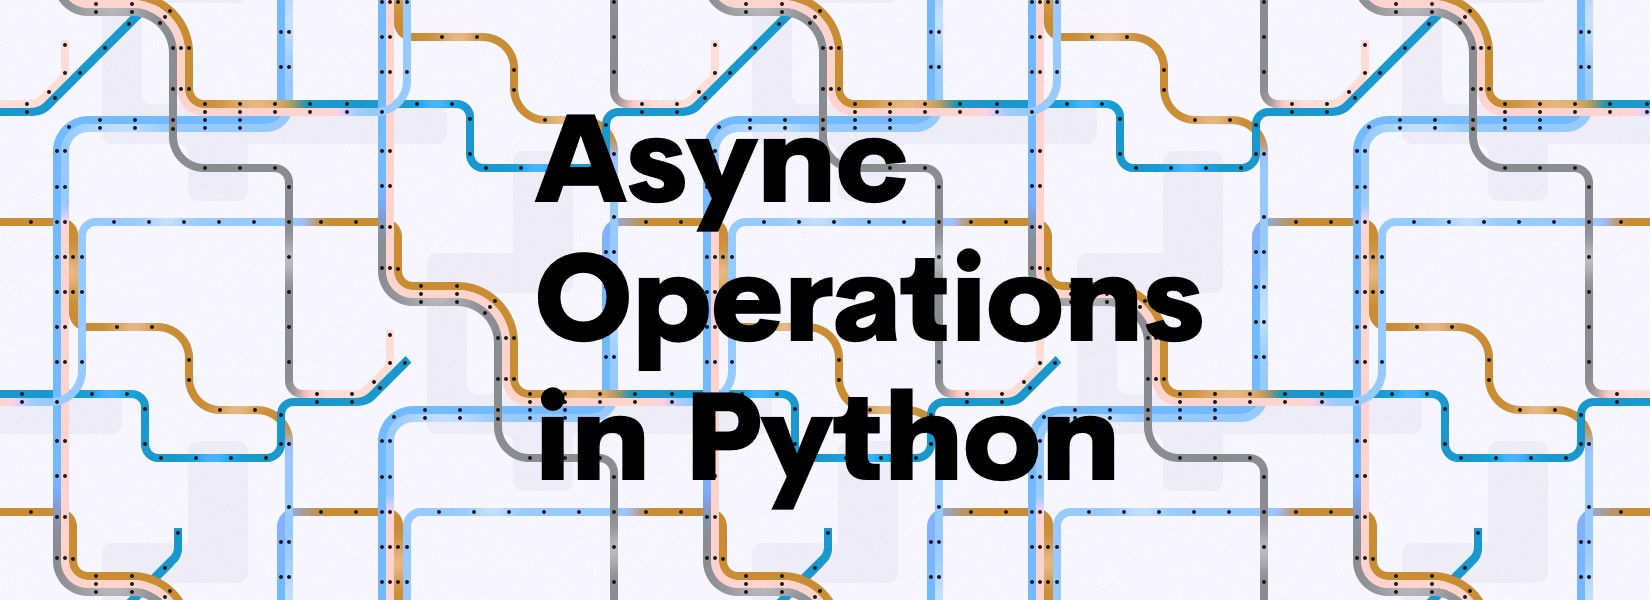 This trick will make you perform async operation in Python like a pro